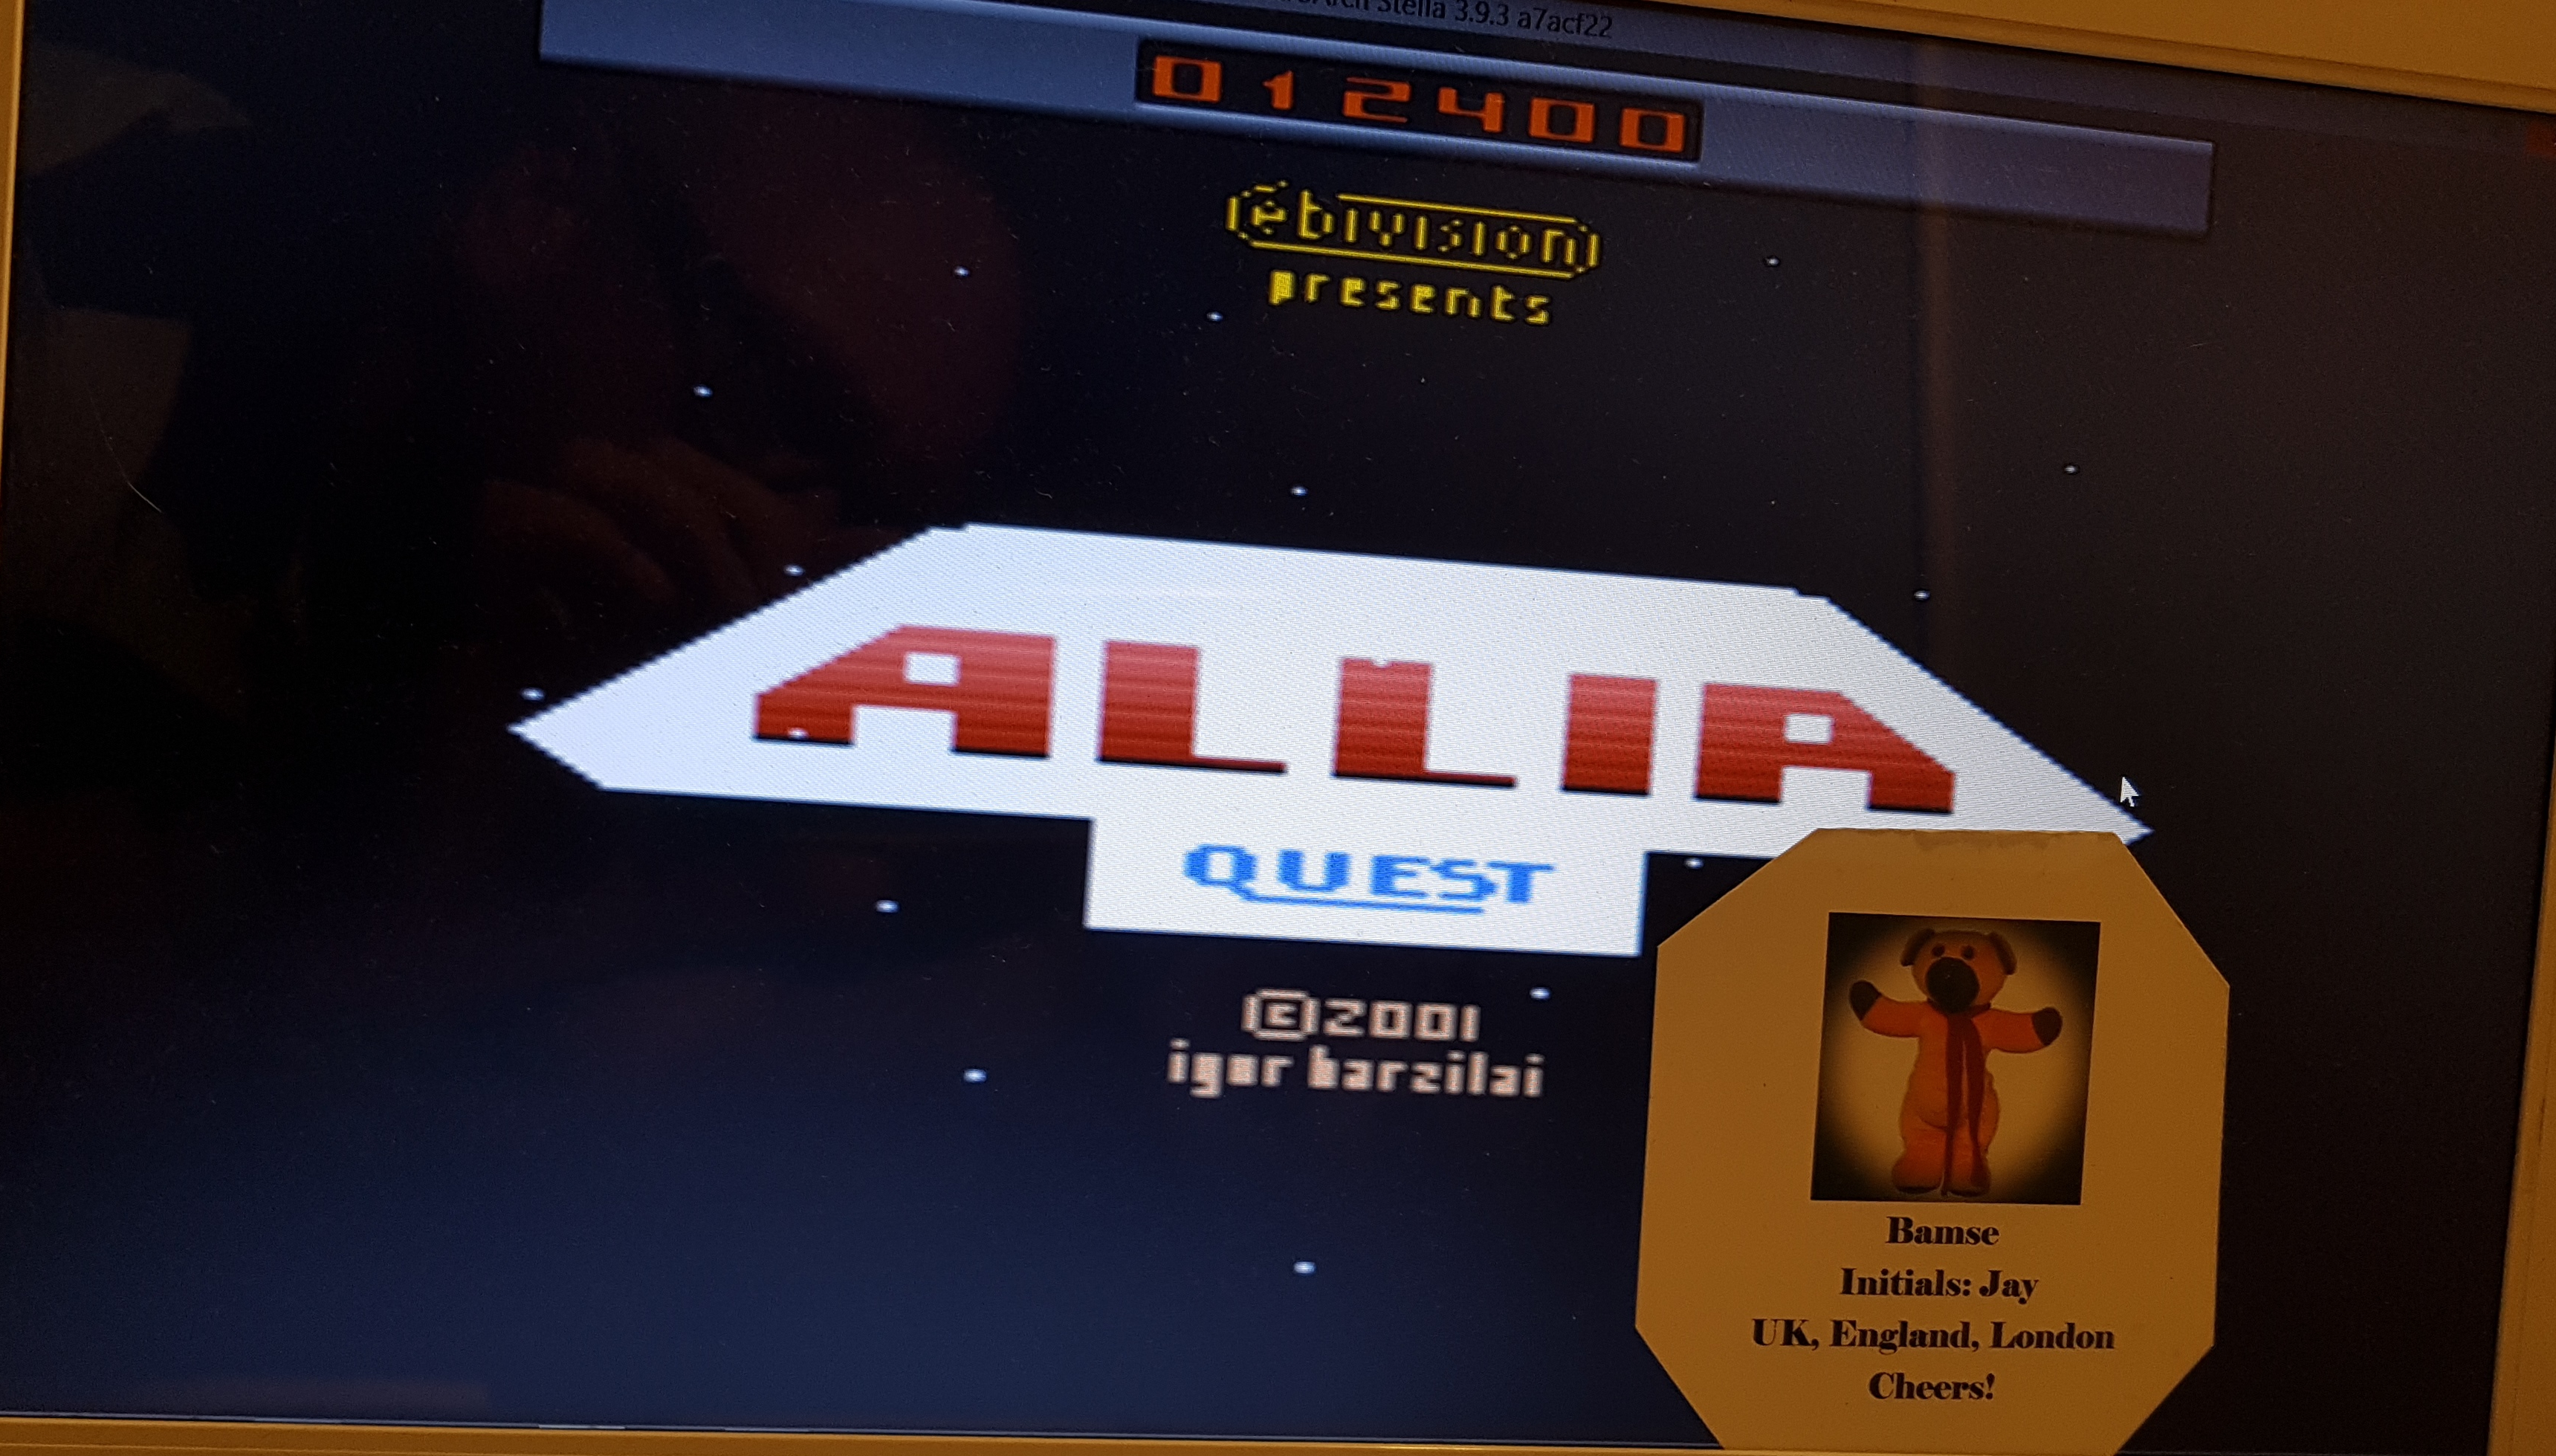 Bamse: Allia Quest (Atari 2600 Emulated Novice/B Mode) 12,400 points on 2019-07-07 16:14:54